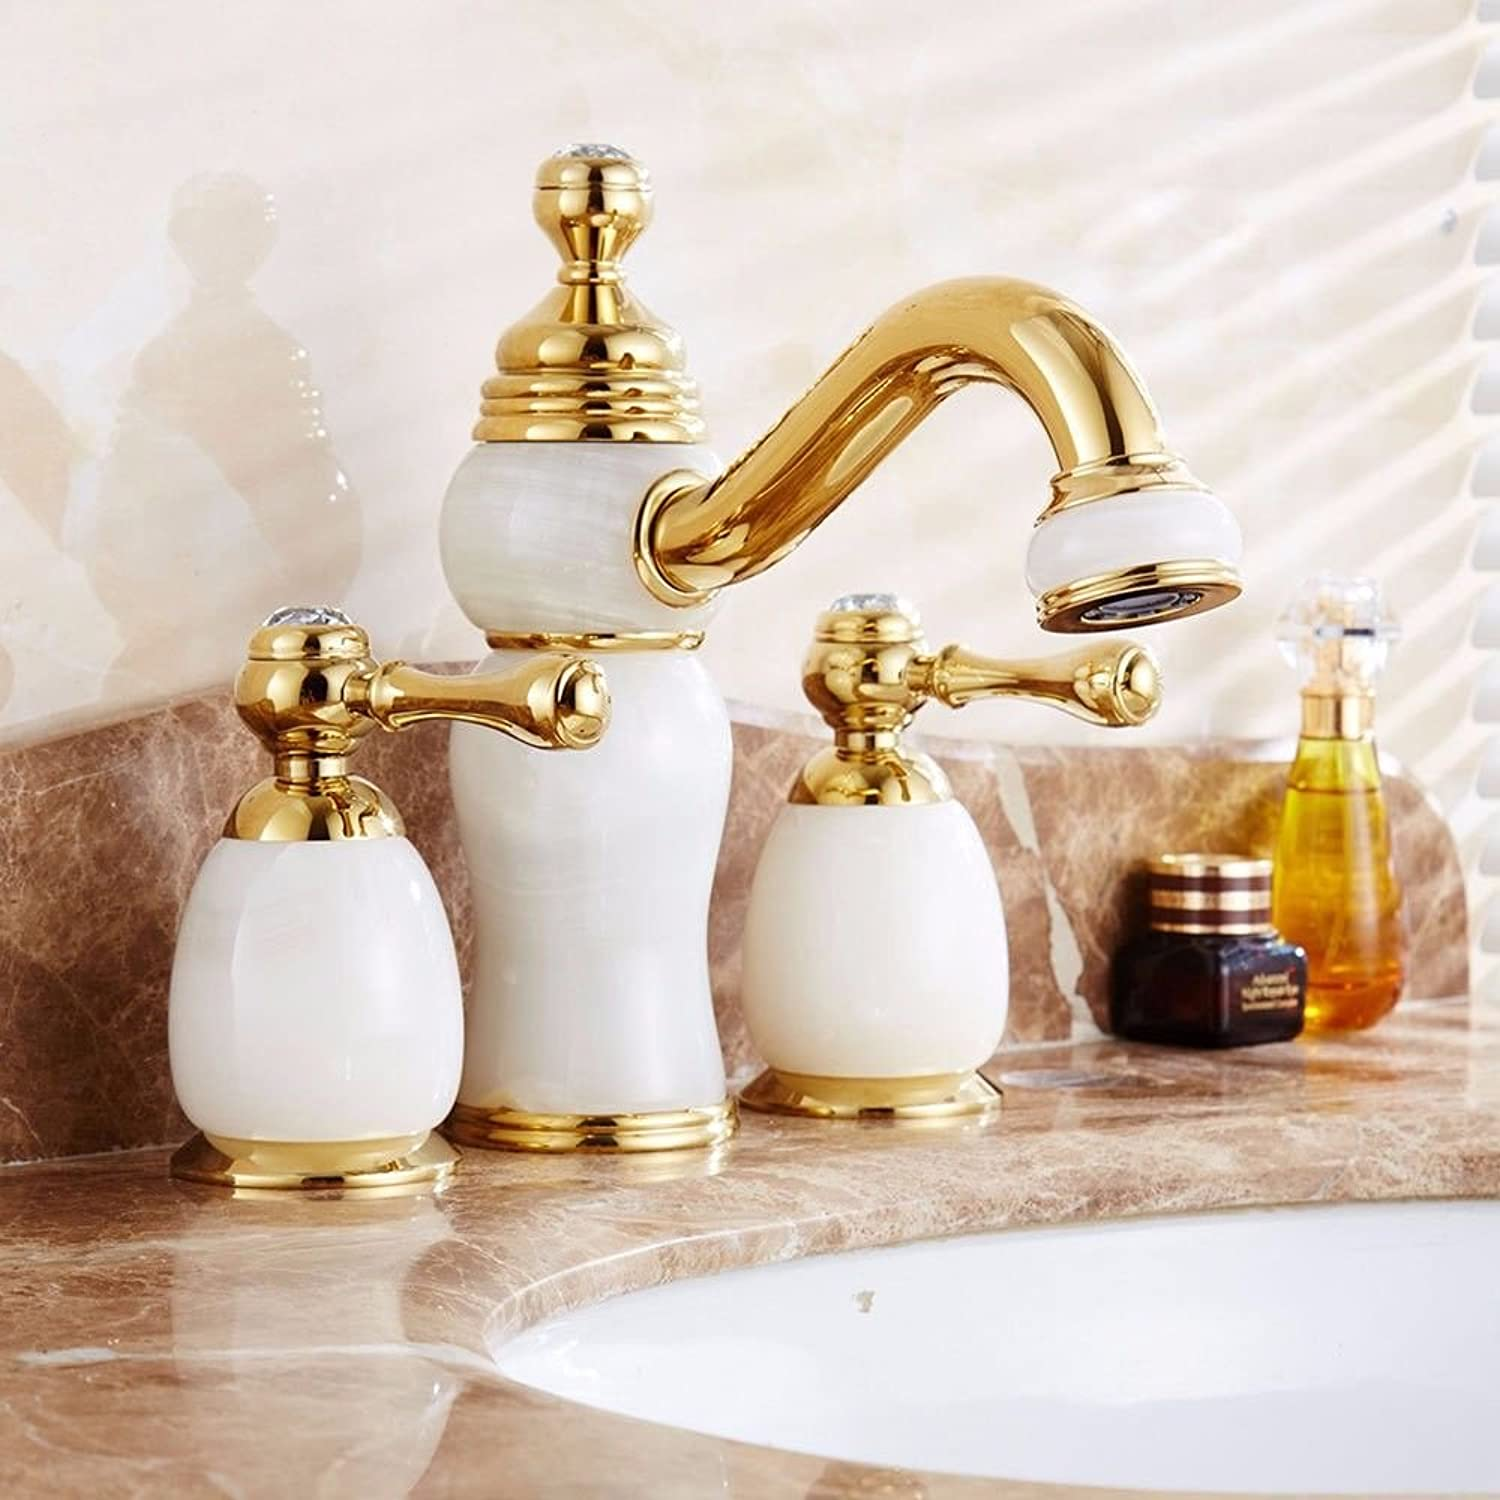 AQMMi Basin Taps Bathroom Sink Faucet Retro Jade Hot and Cold Water Ceramic Valve 3 Holes 2 Lever Bathroom Sink Faucet Basin Mixer Tap